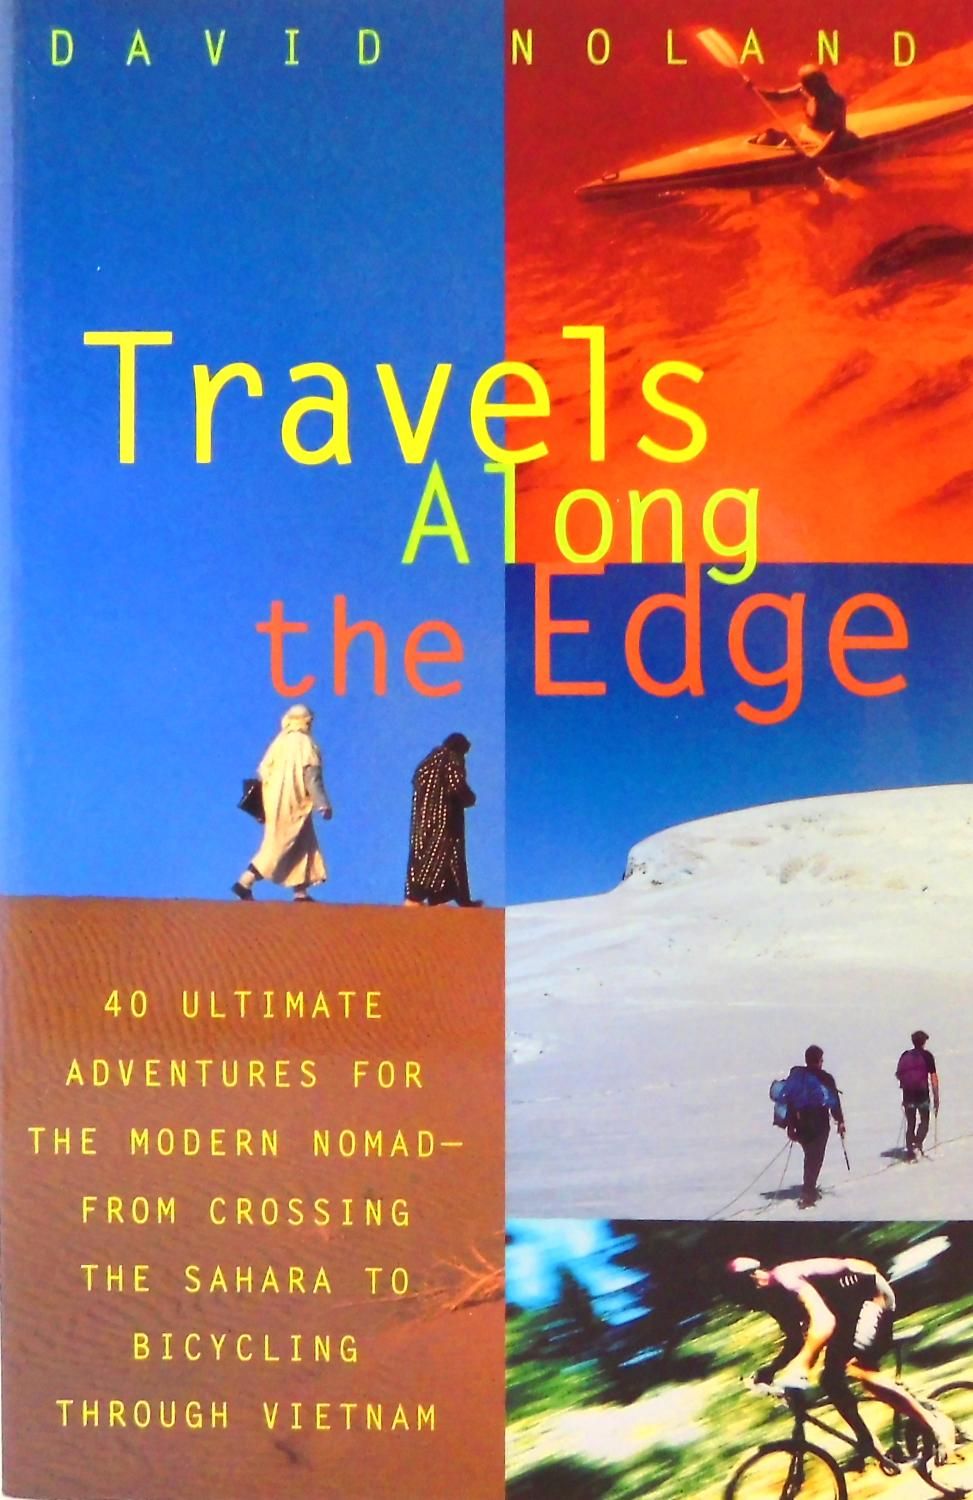 Travels Along the Edge: 40 Ultimate Adventures for the Modern Nomad--From Crossing the Sahara to Bicycling Through Vietnam - Noland, David